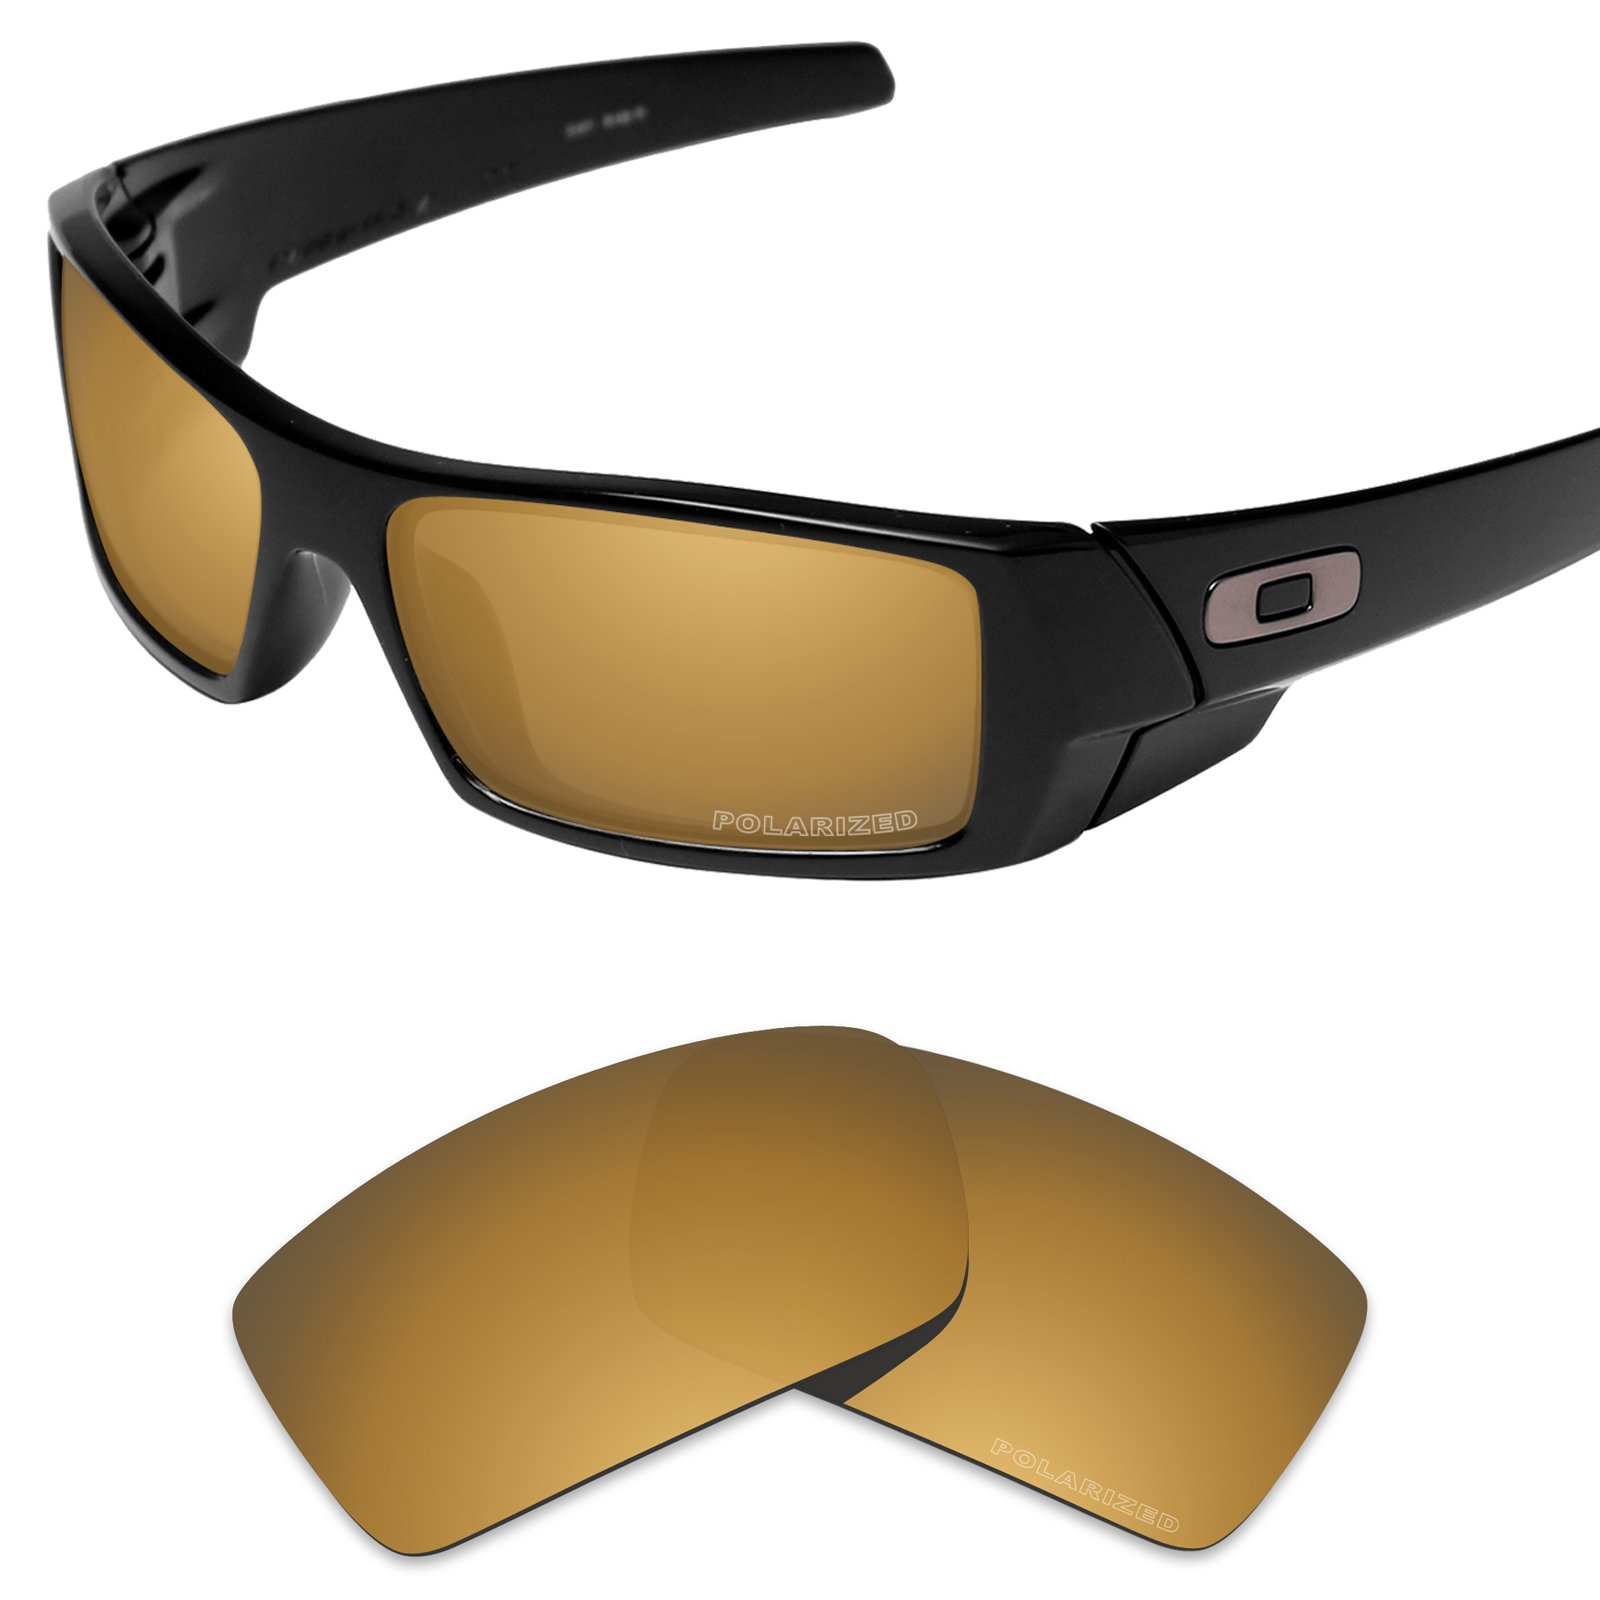 Tintart Performance Replacement Lenses for Oakley Gascan Sunglass Polarized Etched-Tungsten Gold